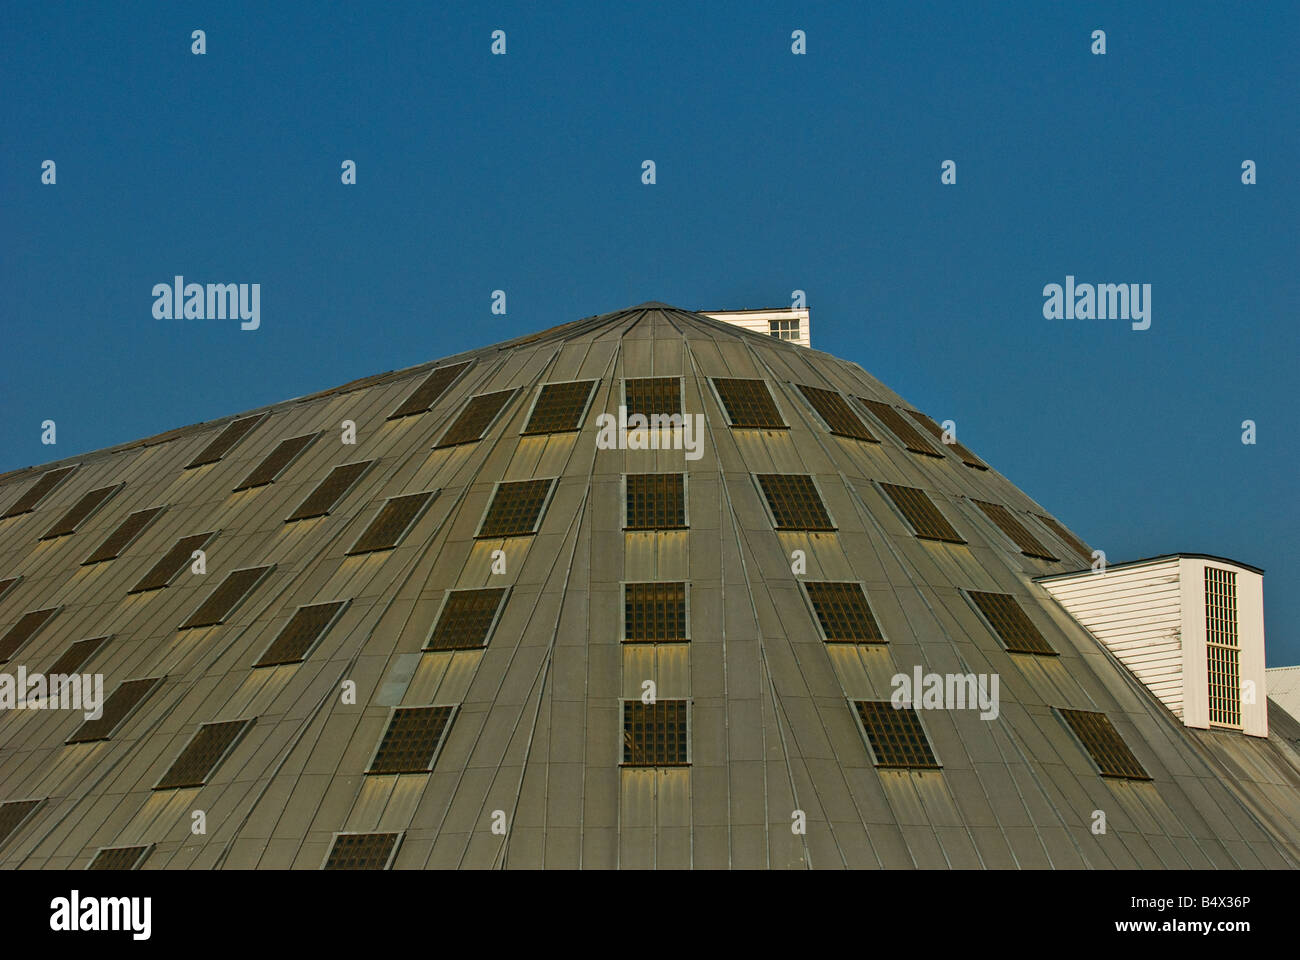 The roof of No 3 Slip Cover Chatham Historic Dockyard in Kent. - Stock Image